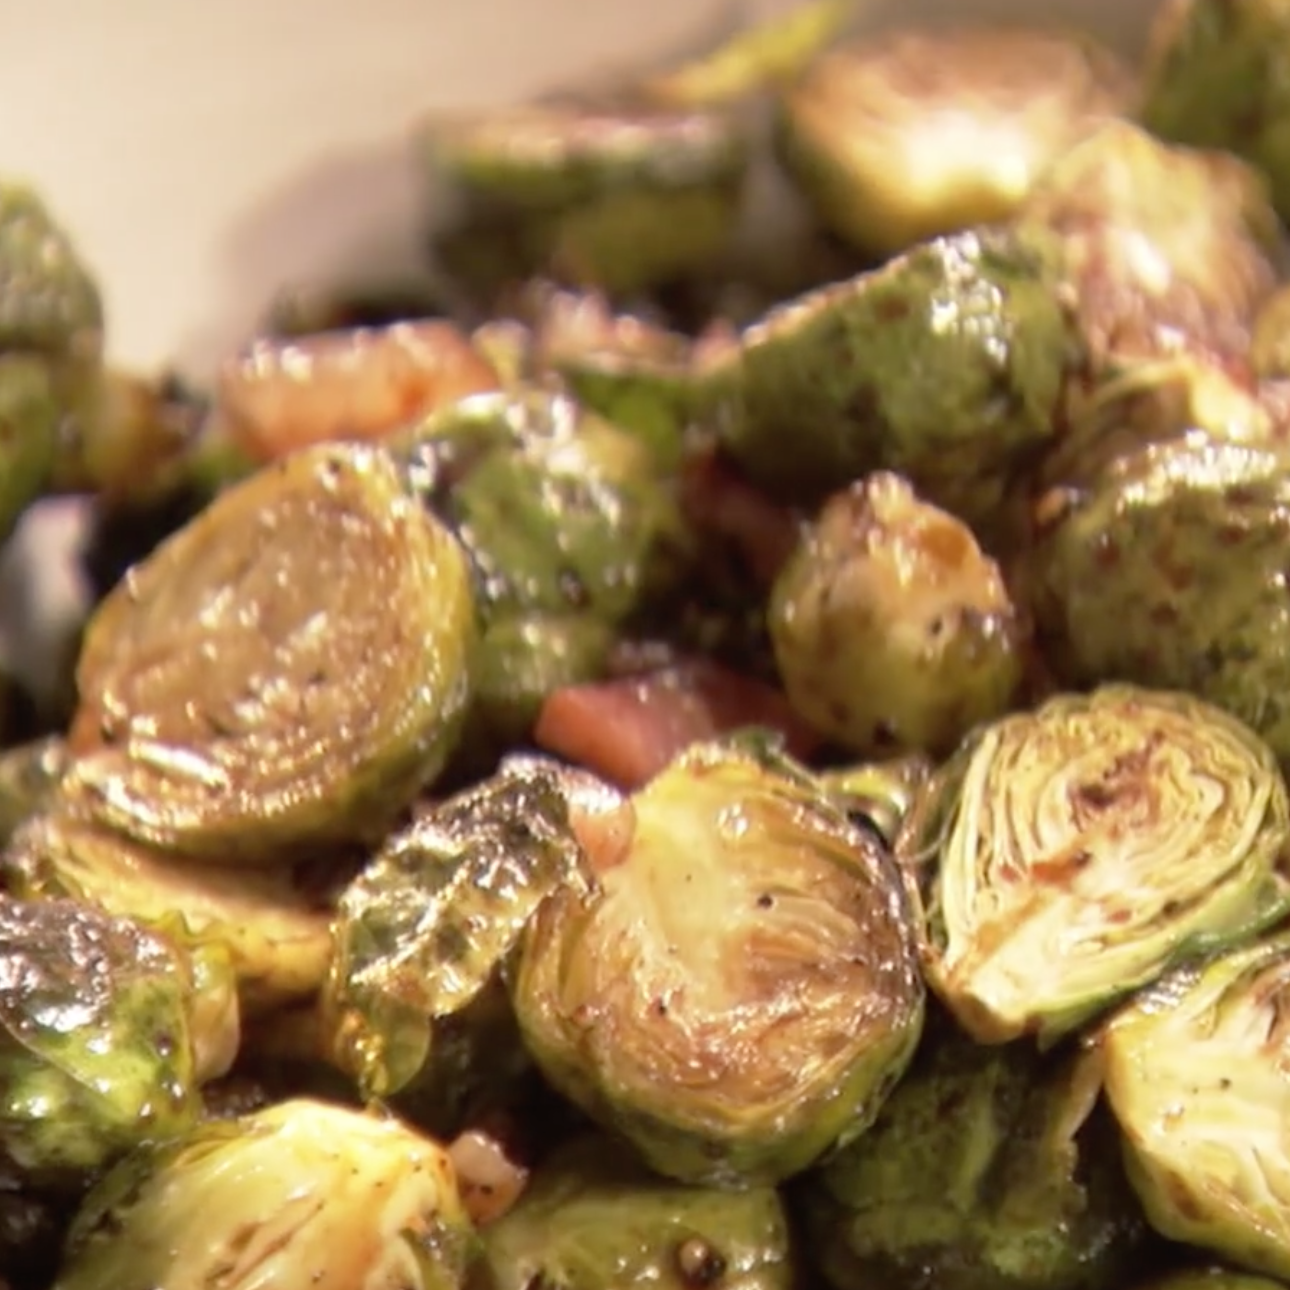 How to Make Ina Garten's Balsamic-Roasted Brussels